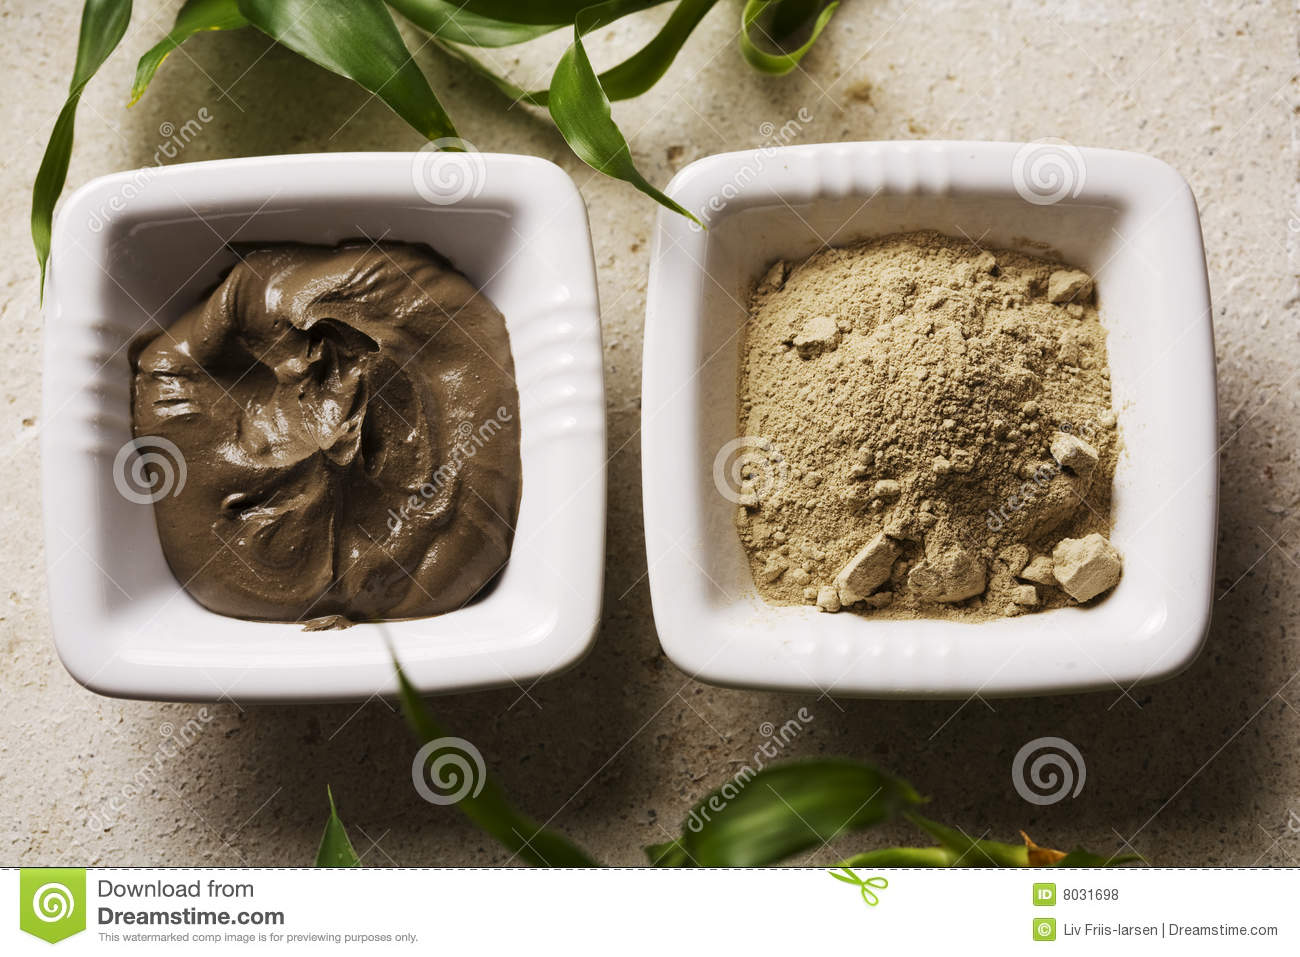 Organic spa products